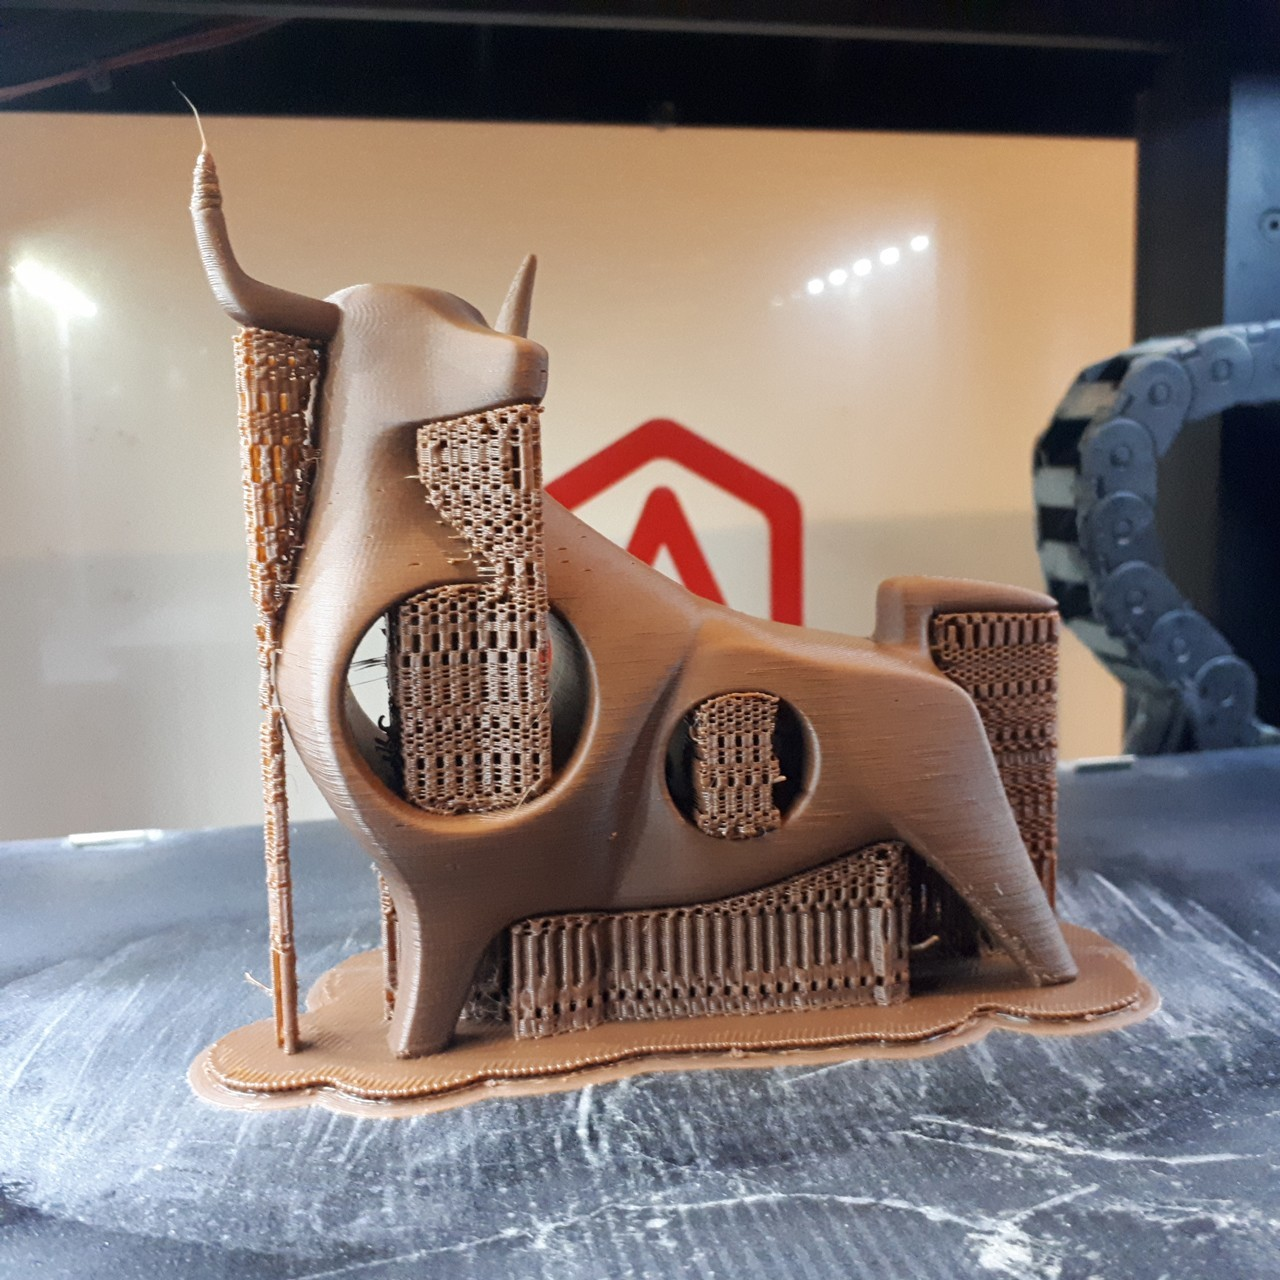 20180307_011637.jpg Download STL file Bull • Object to 3D print, iradj3d